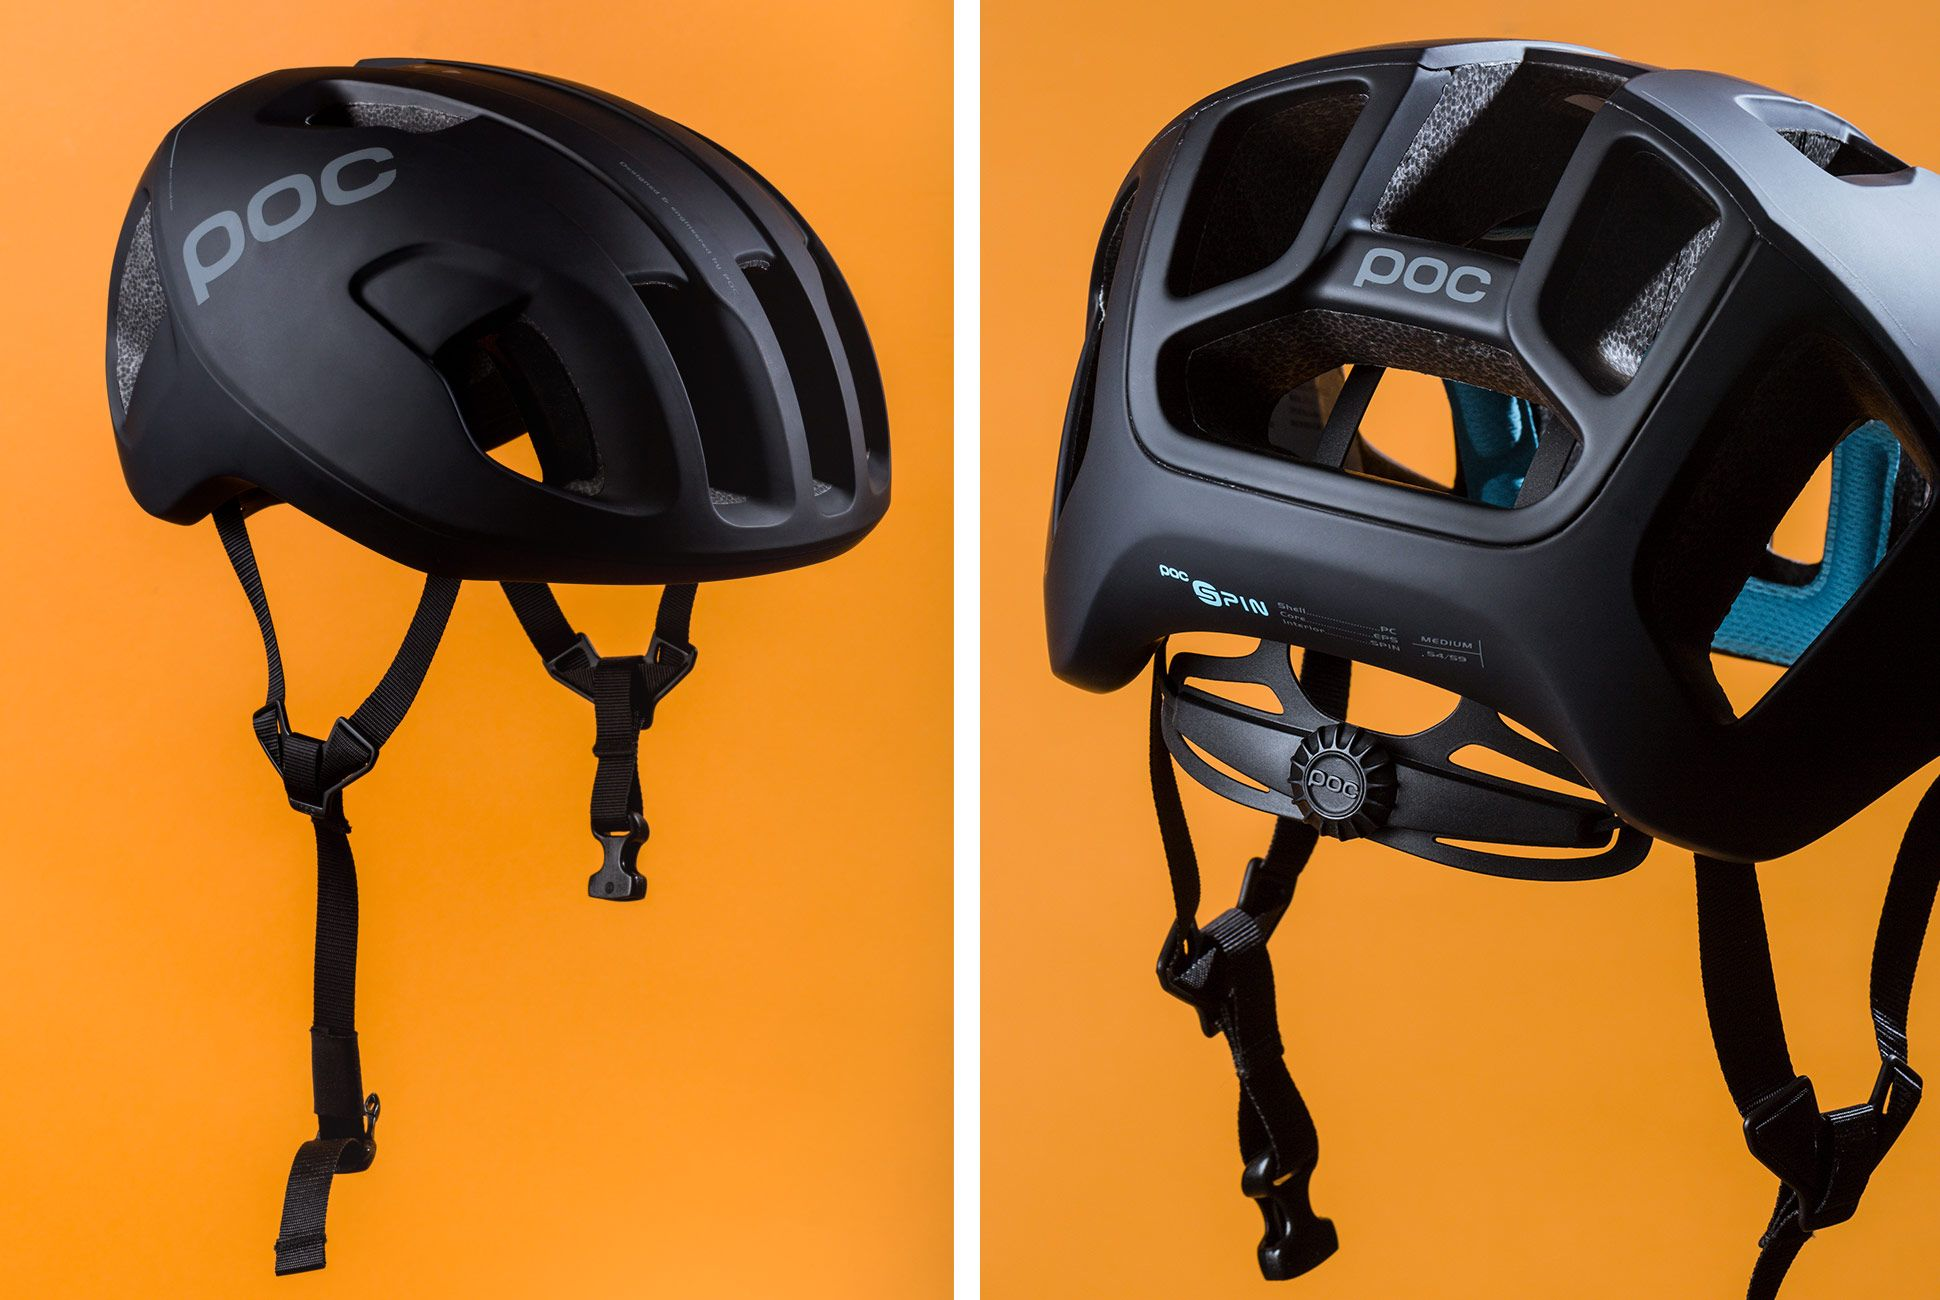 picked up low price sale release date: POC's New Road Bike Helmet Could Be Its Best Product Yet • Gear Patrol